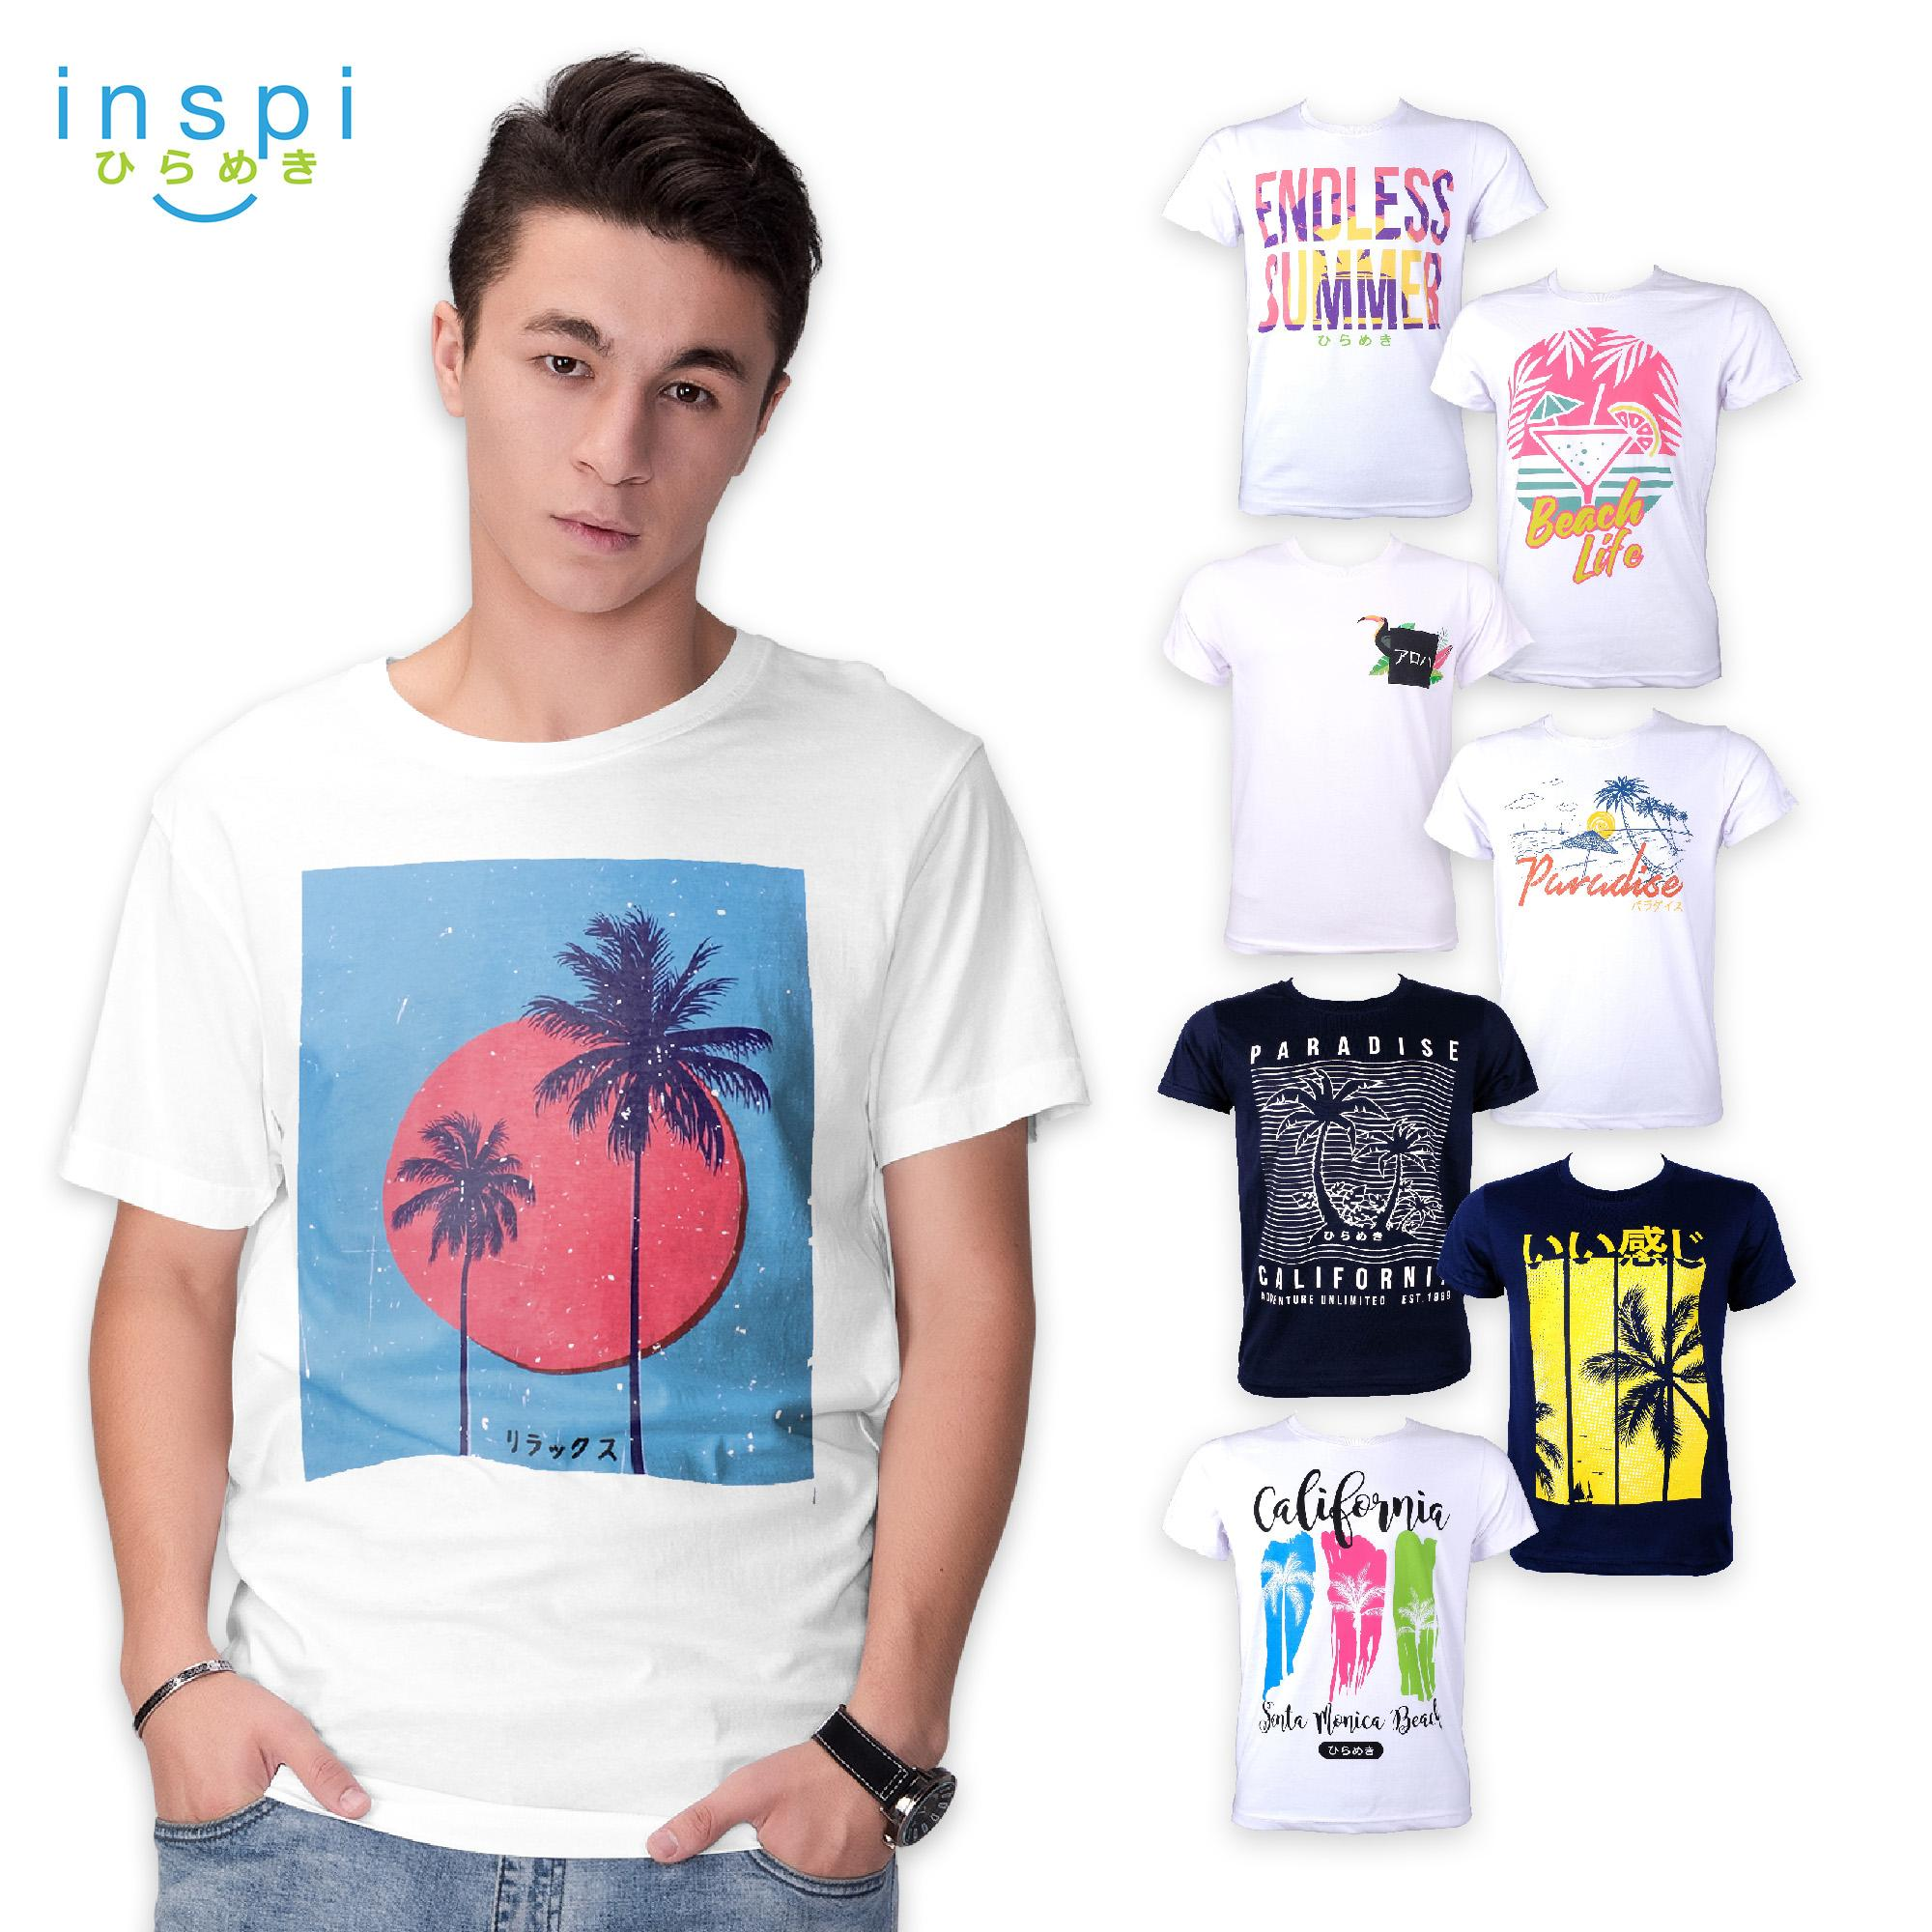 745f763b4c INSPI Tees Summer Collection tshirt printed graphic tee Mens t shirt shirts  for men tshirts sale